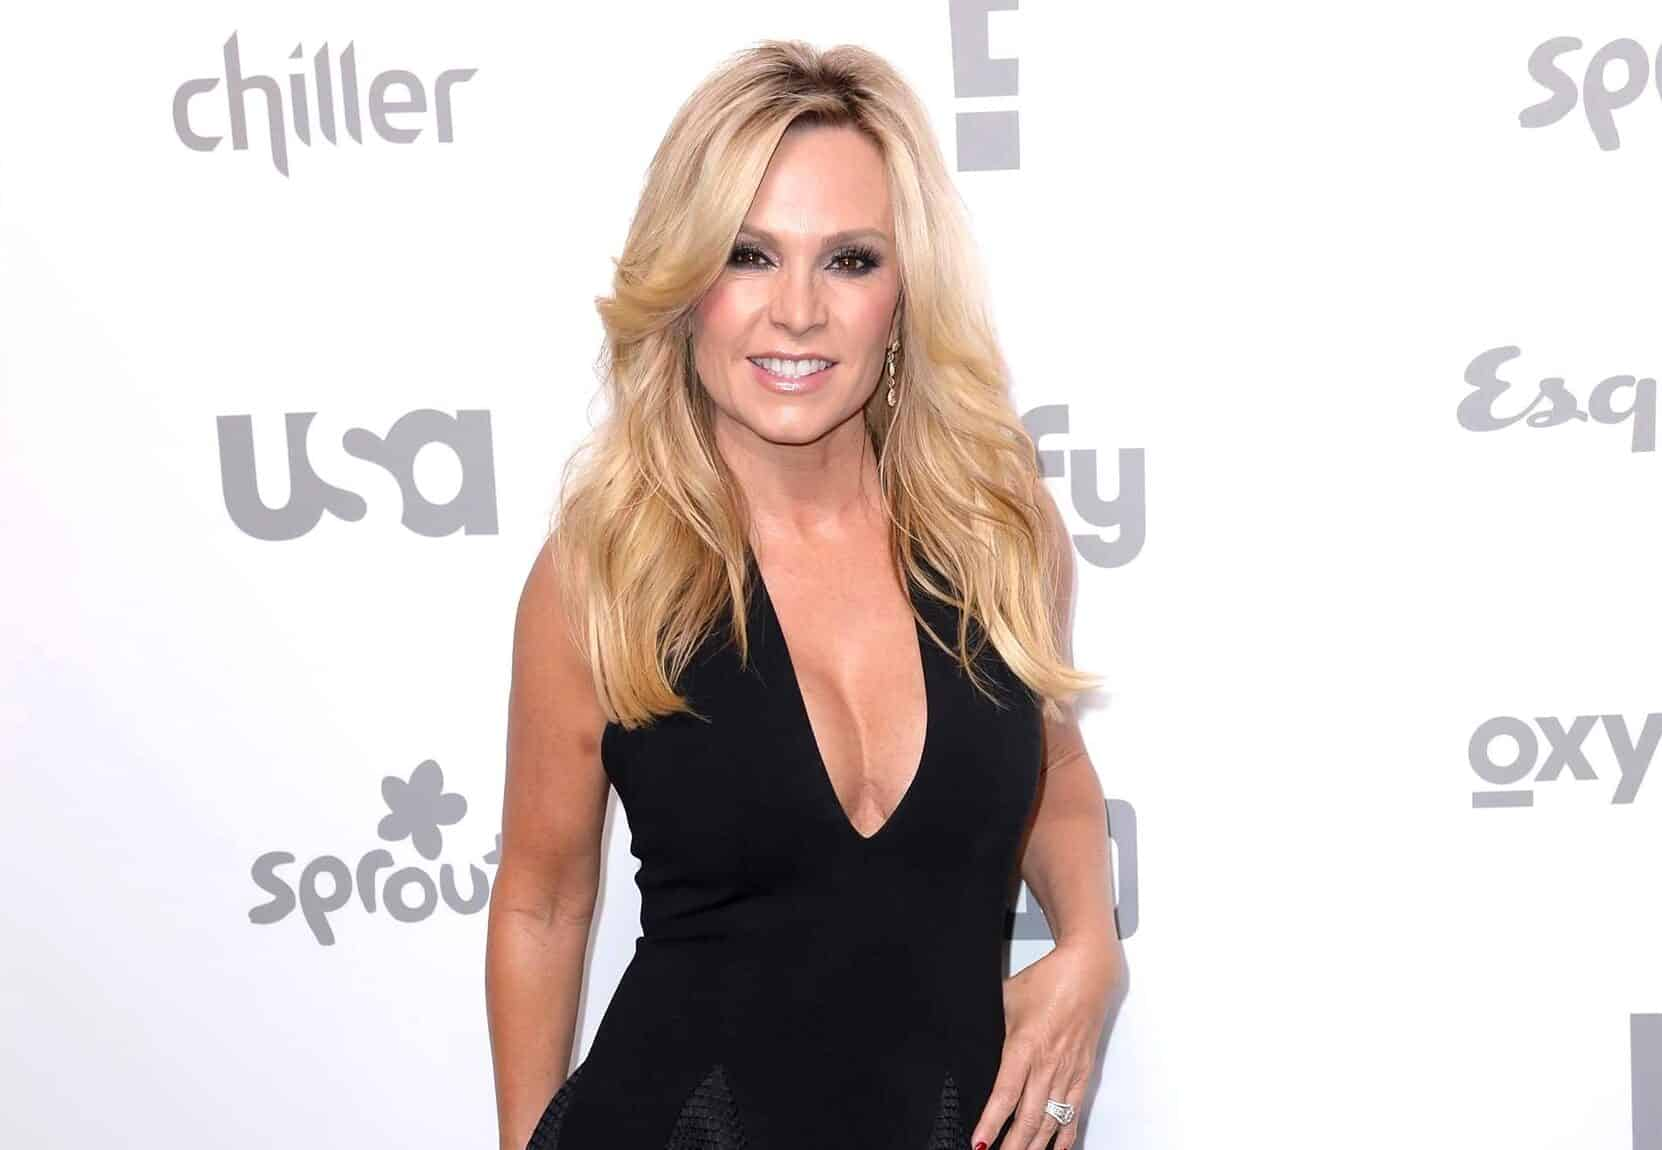 Tamra Judge Reveals Which RHOC Scene Was Staged, Bashes Editing, and Claims Decision to Leave Was Mutual, Plus She Hints at Family Issues